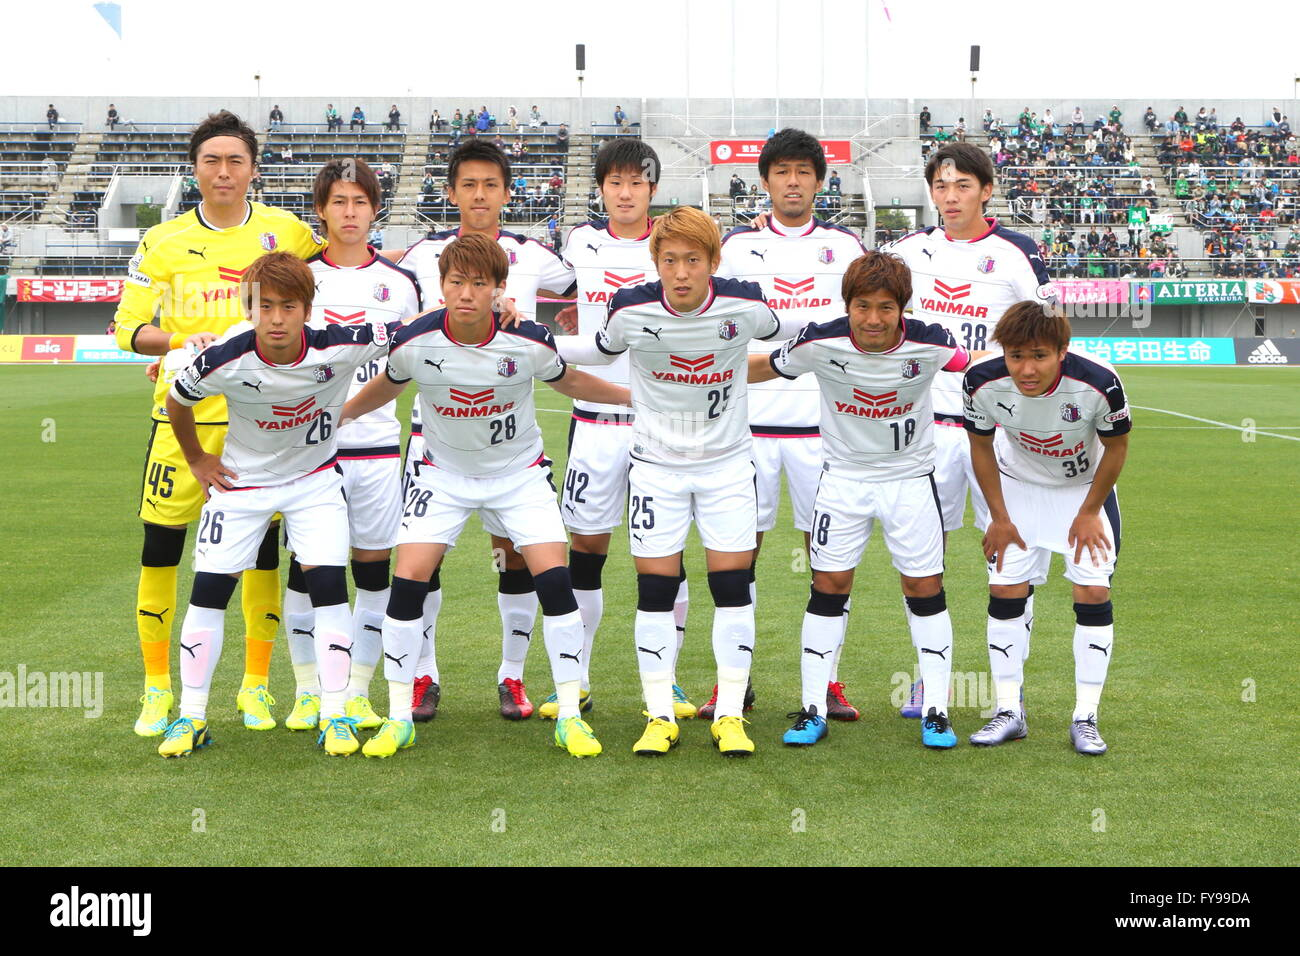 Cerezo Osaka Team Group Line Up High Resolution Stock Photography And Images Alamy